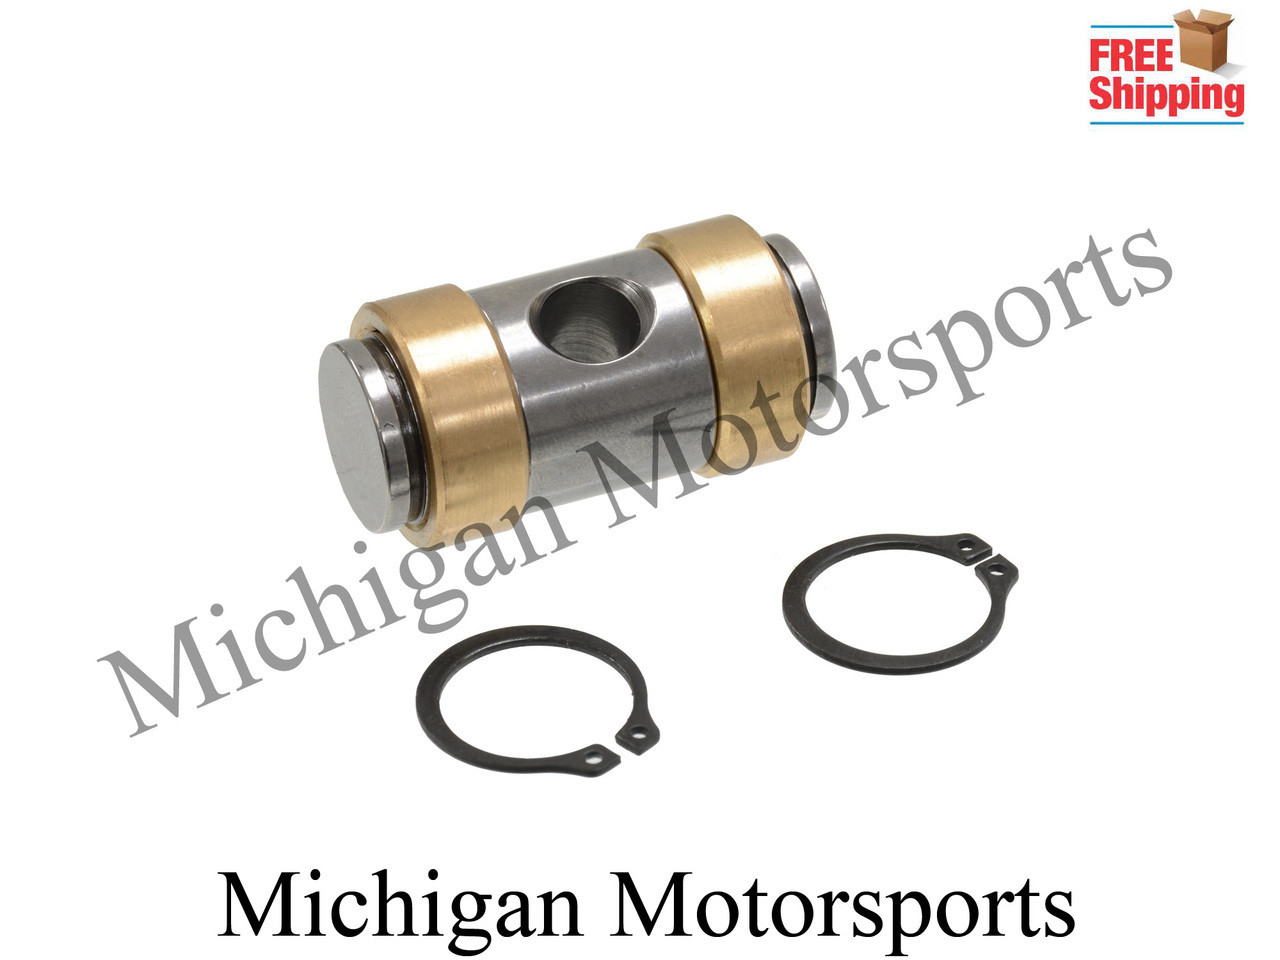 Chevy GM LS LS1 Rocker Arm Trunnion Trunion Bronze Bushing Kit with install tool